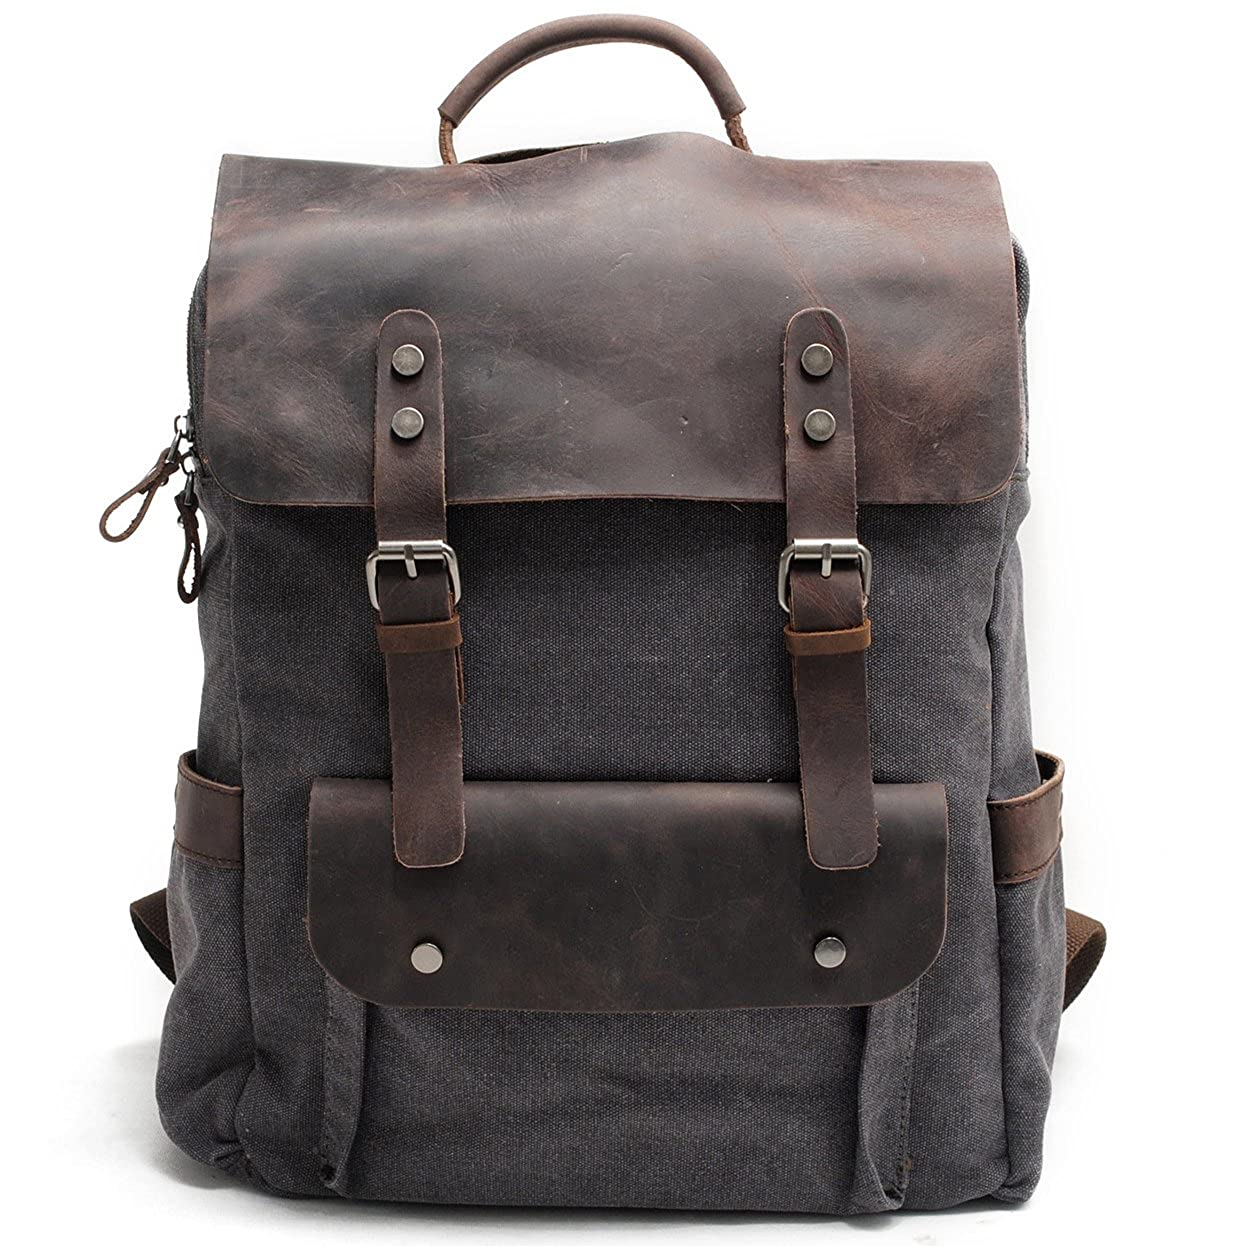 Kenox Leather Canvas Rucksack Laptop Backpack College School Bookbag